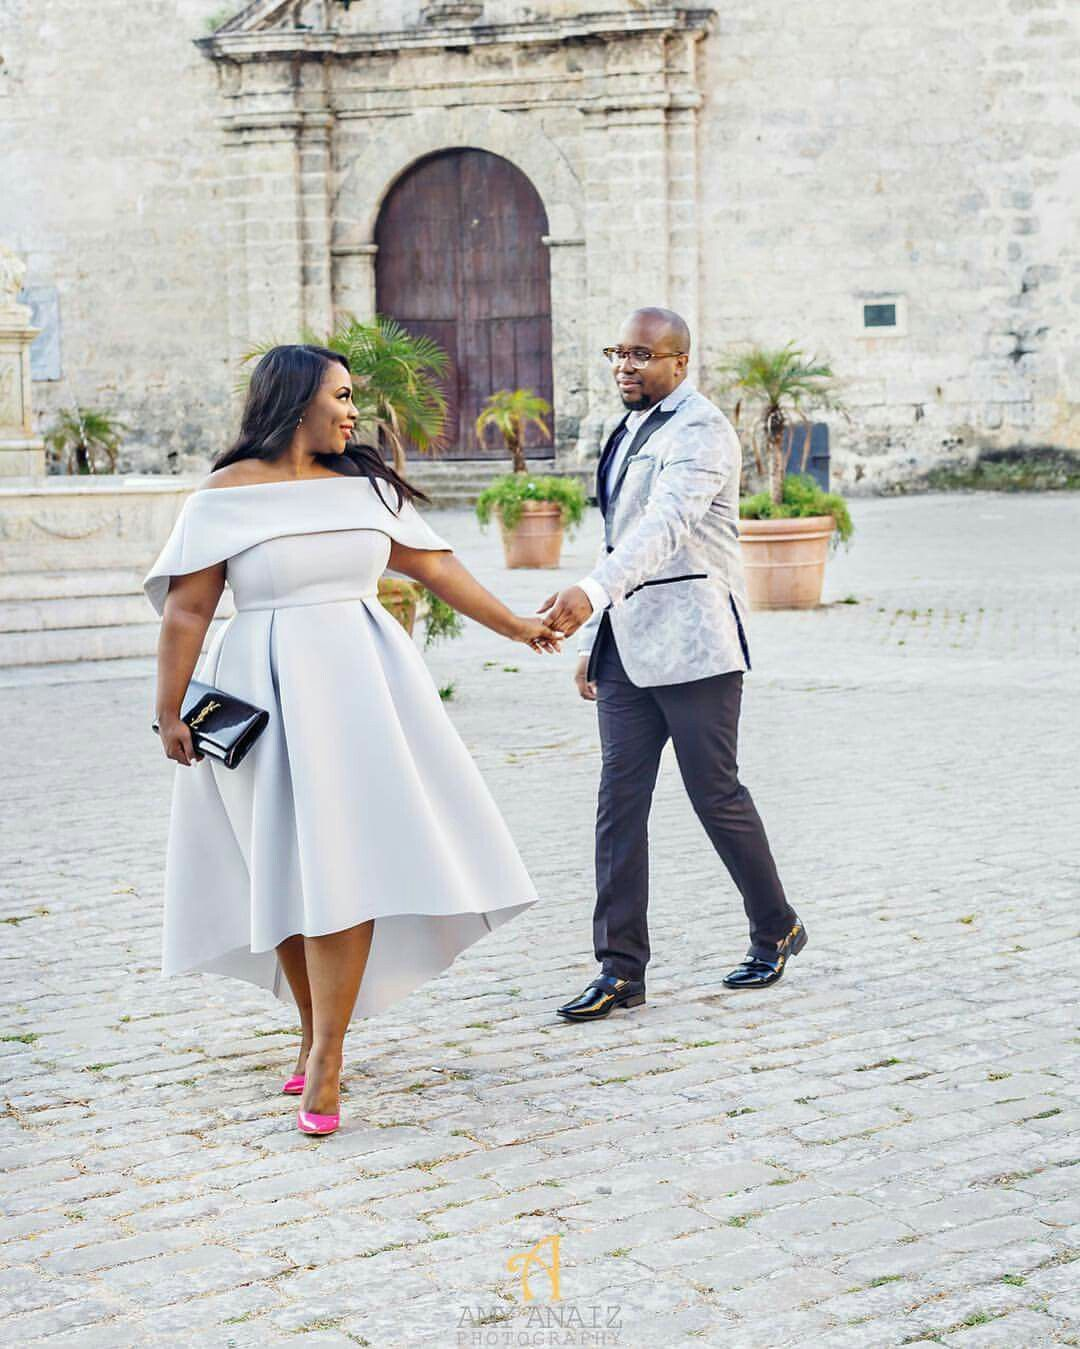 Pin by fatimah zeba on cute couples pinterest weddings africans